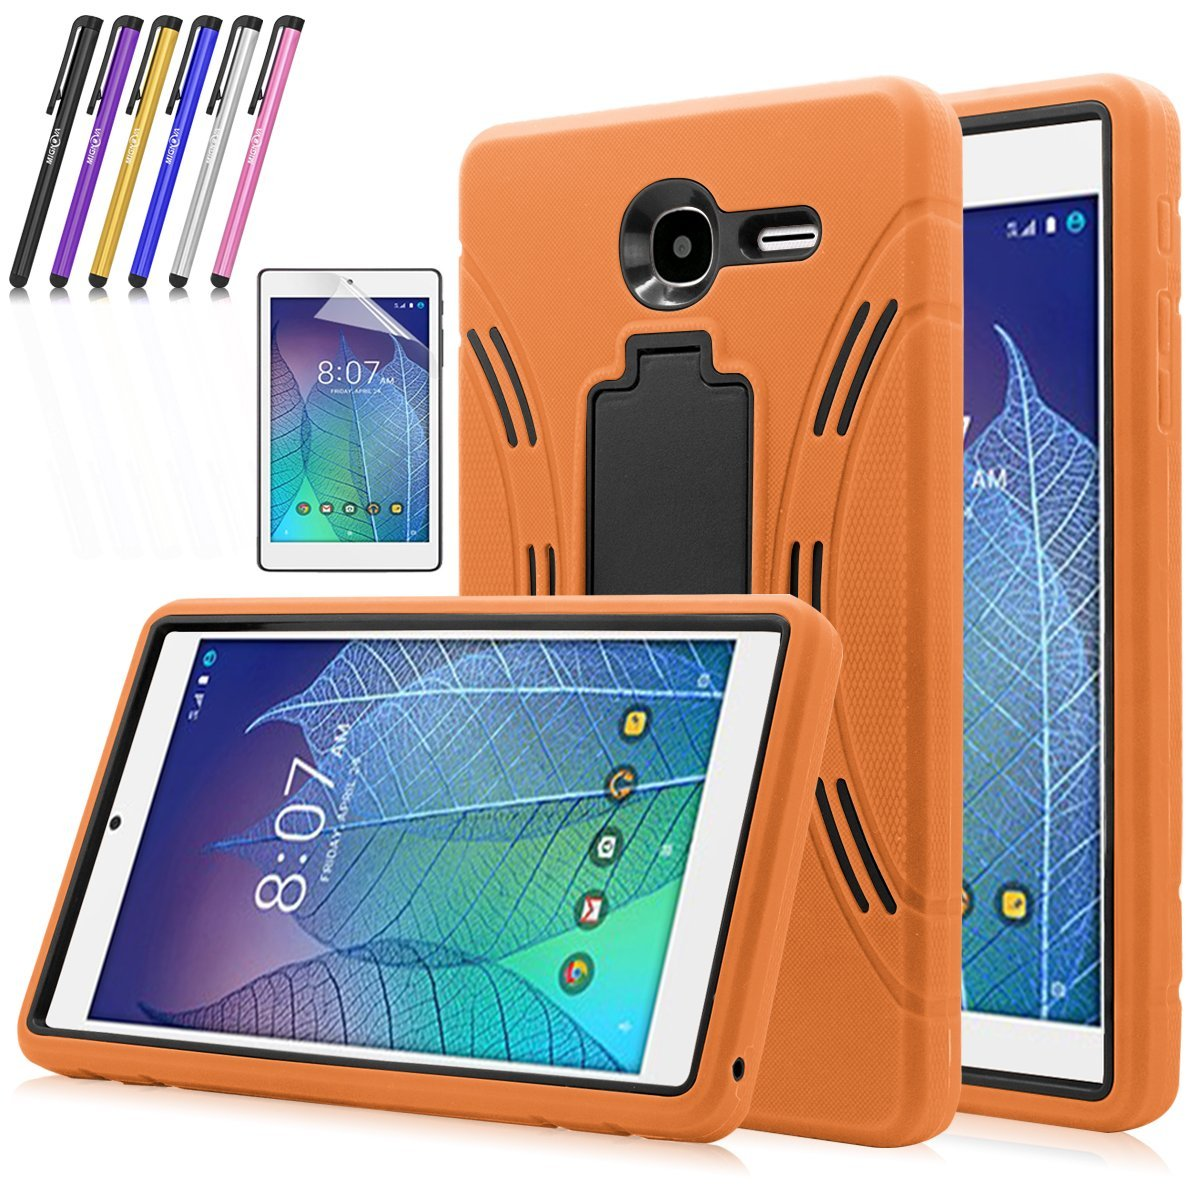 Mignova Heavy Duty rugged impact Hybrid Case with Build In Kickstand Protective Case For Alcatel Onetouch POP 7 LTE (T-Mobile 2016 Model 9015W) + Screen Protector Film and stylus pen (Black)